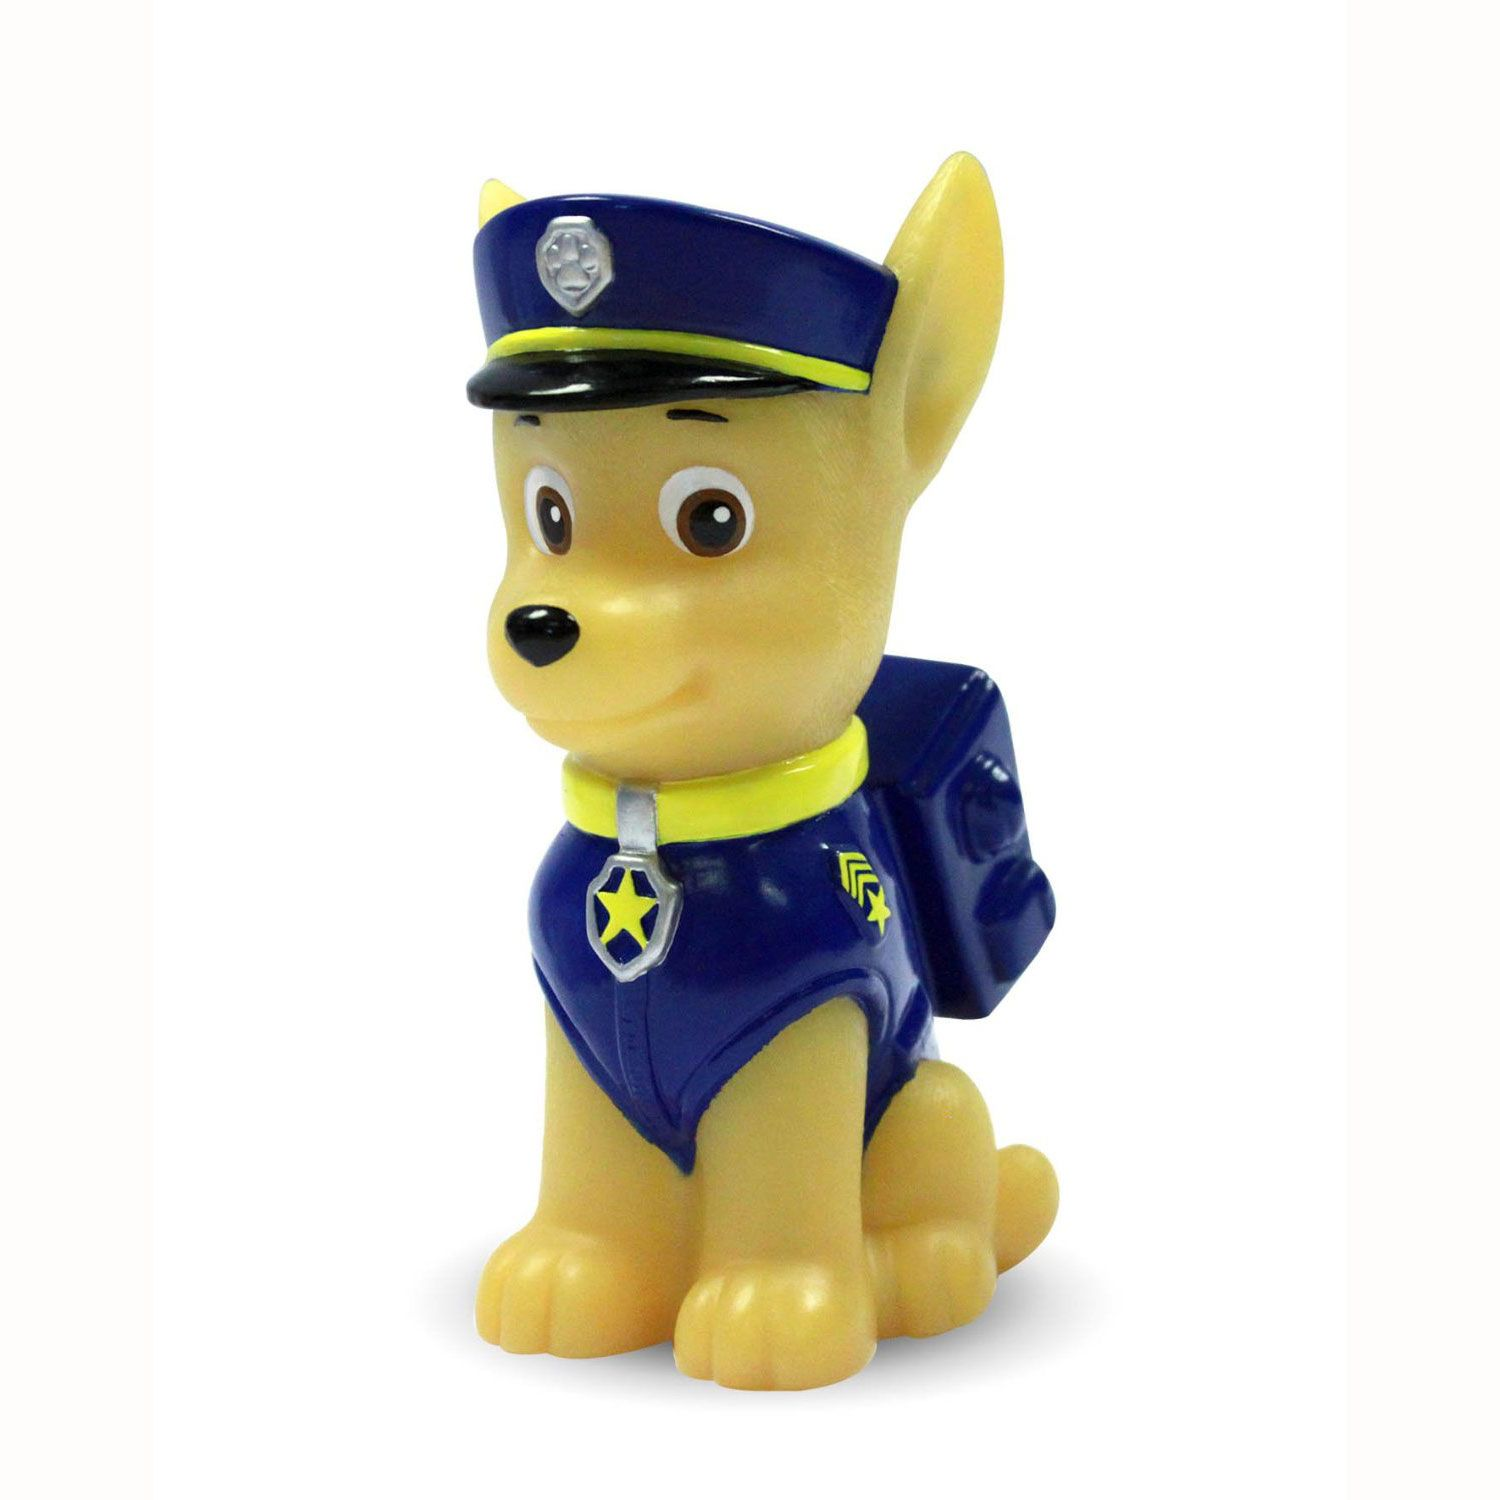 PAW PATROL KIDS BEDROOM LIGHTING ILLUMI MATE LAMP